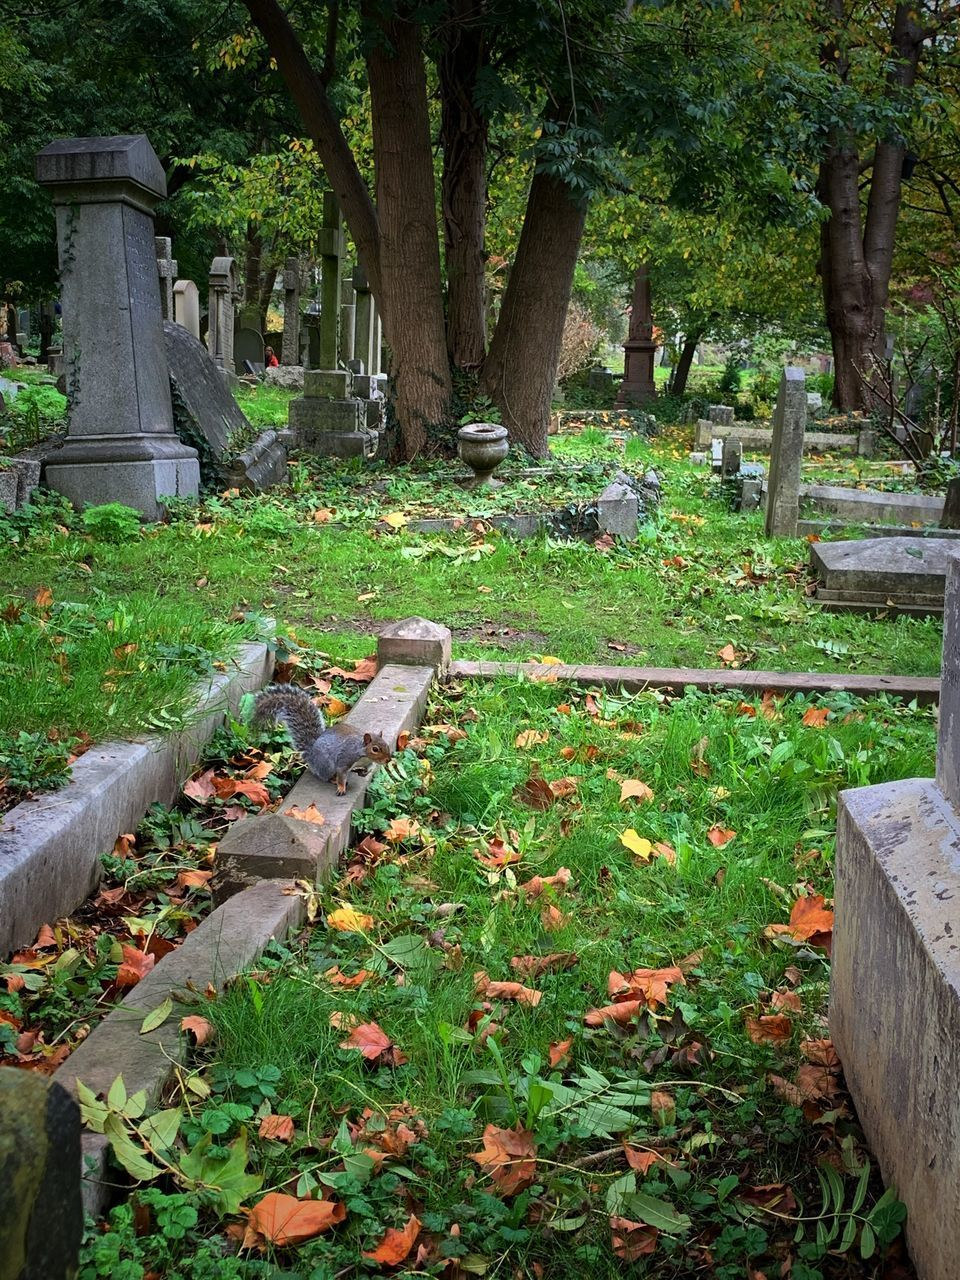 plant, grave, cemetery, tombstone, tree, stone, nature, day, grass, no people, growth, sadness, tree trunk, trunk, park, tranquility, land, outdoors